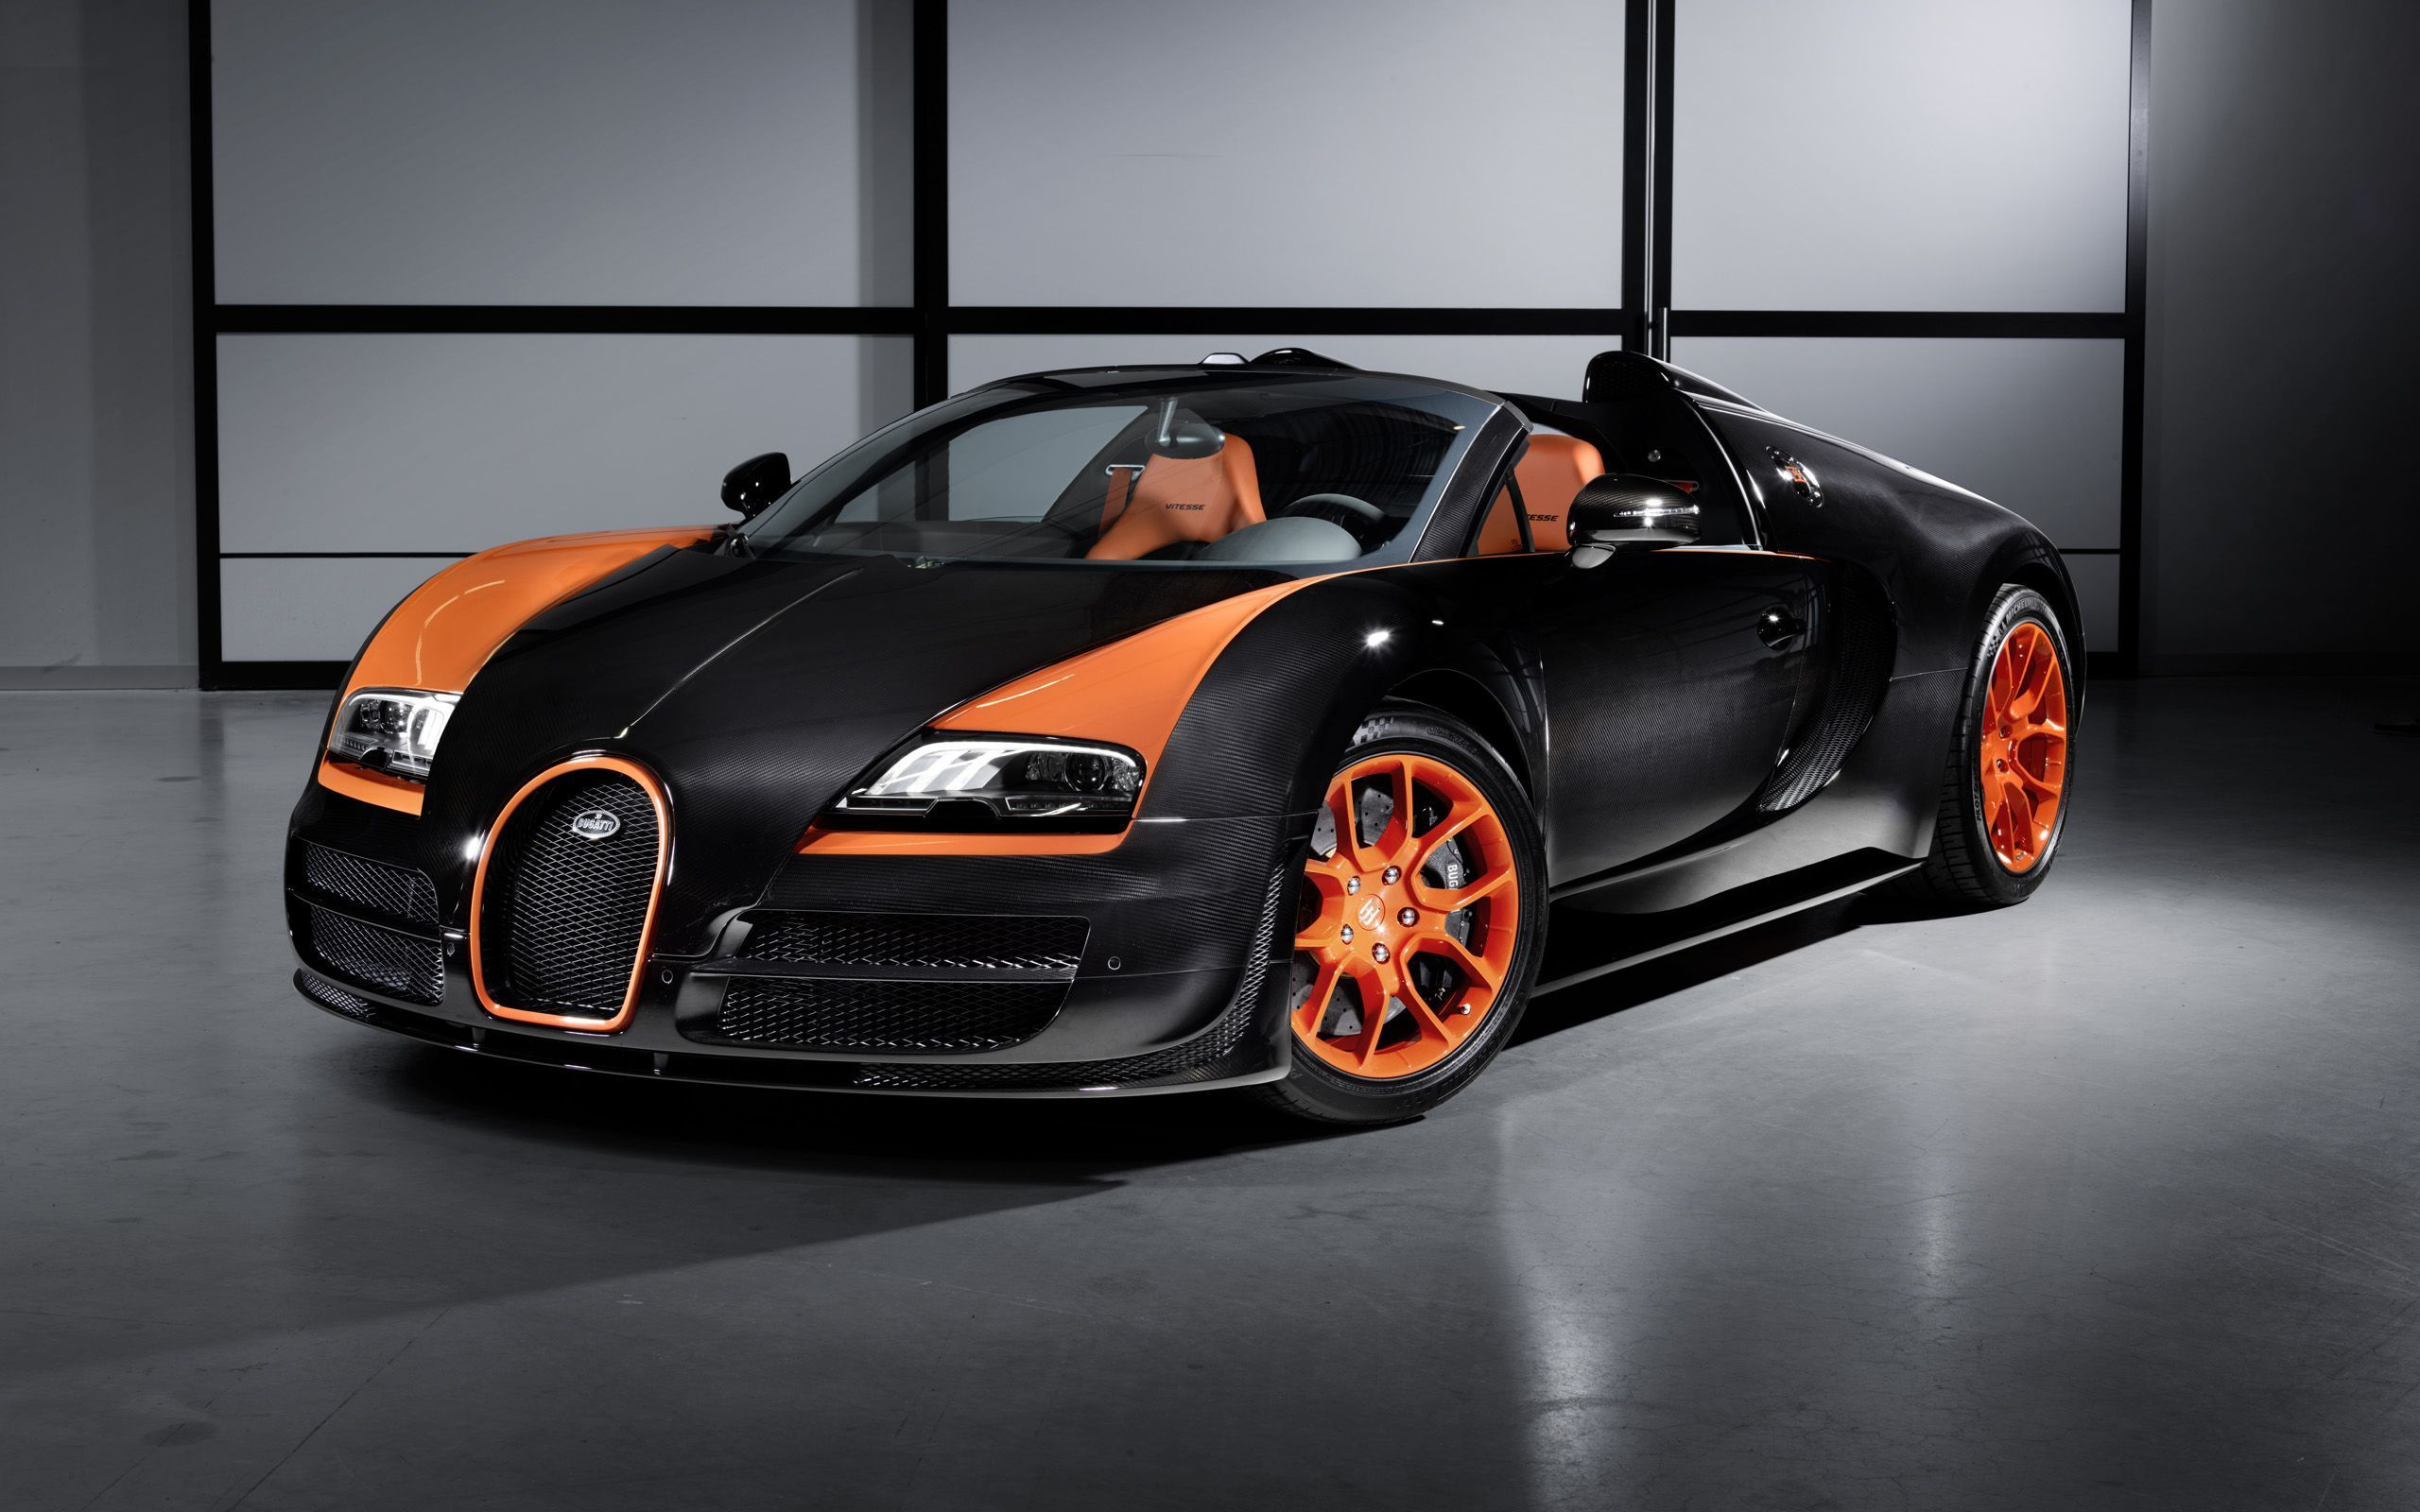 bugatti veyron wallpapers hd - wallpaper cave #luxurysportscars2013